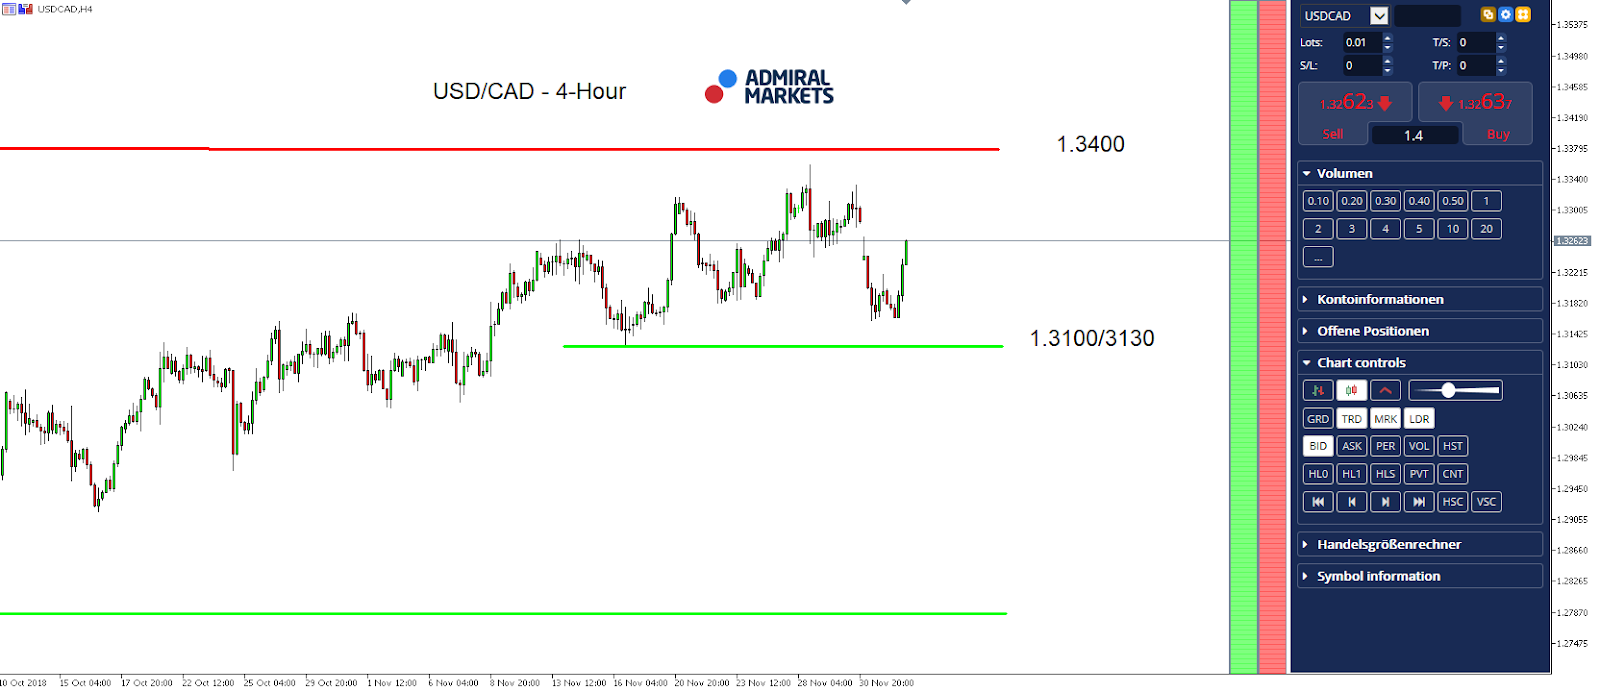 USDCAD 4 Hourly Chart